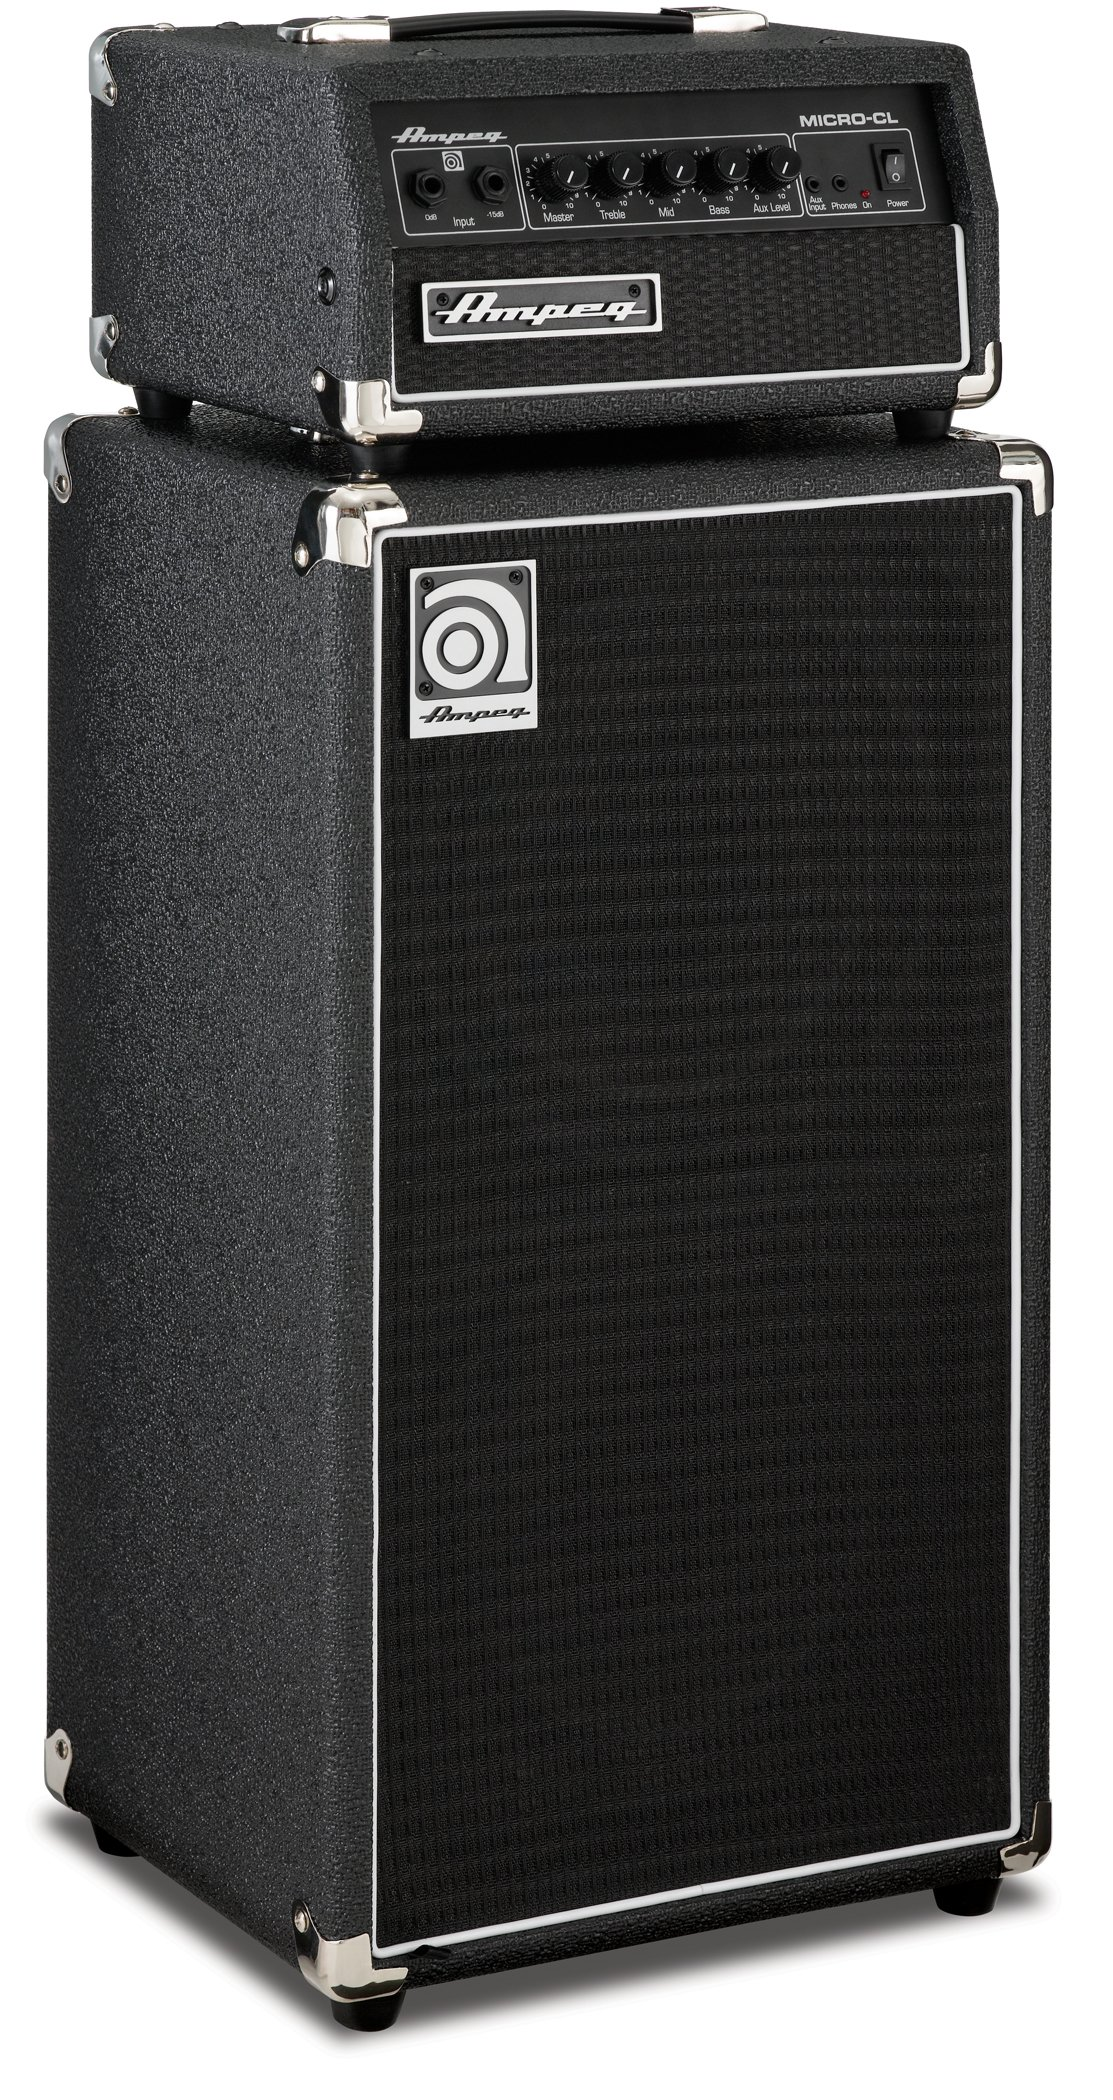 Ampeg MICRO-CL Micro-CL Bass Amp Stack - 100-Watt Head with 2 x 10 Cabinet by Ampeg